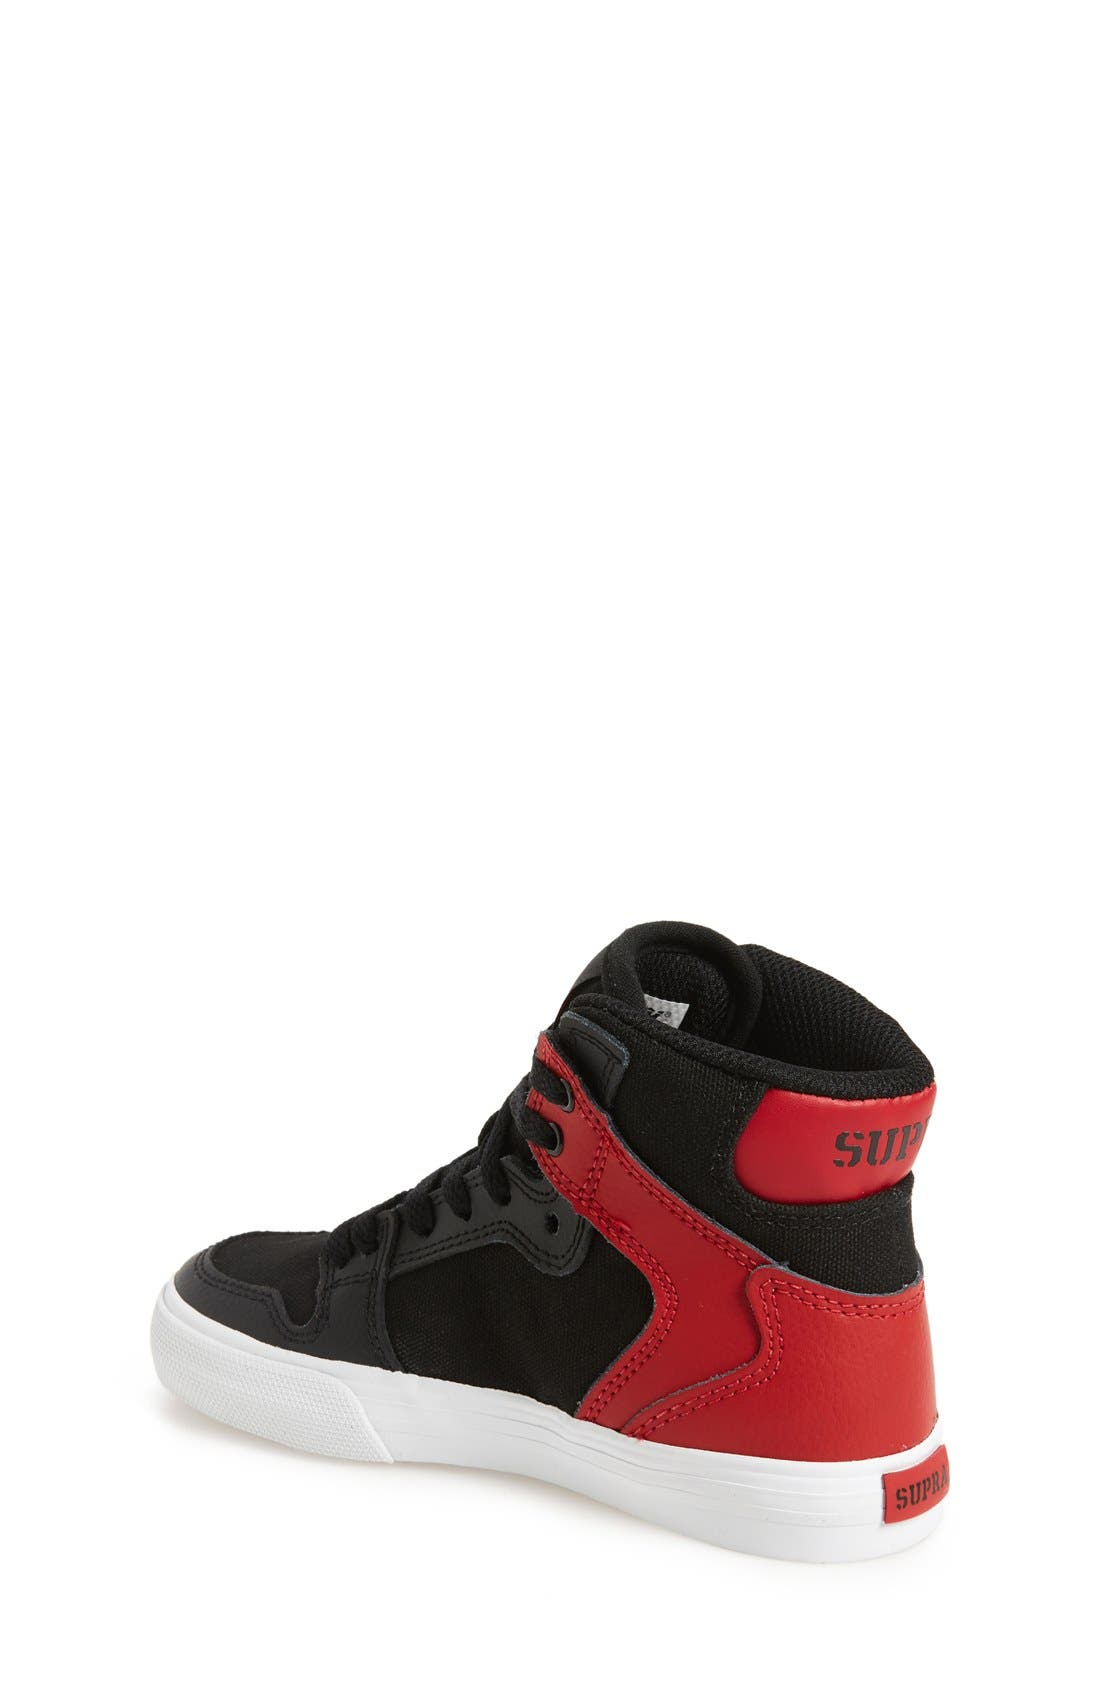 'Vaider' High Top Sneaker,                             Alternate thumbnail 2, color,                             001